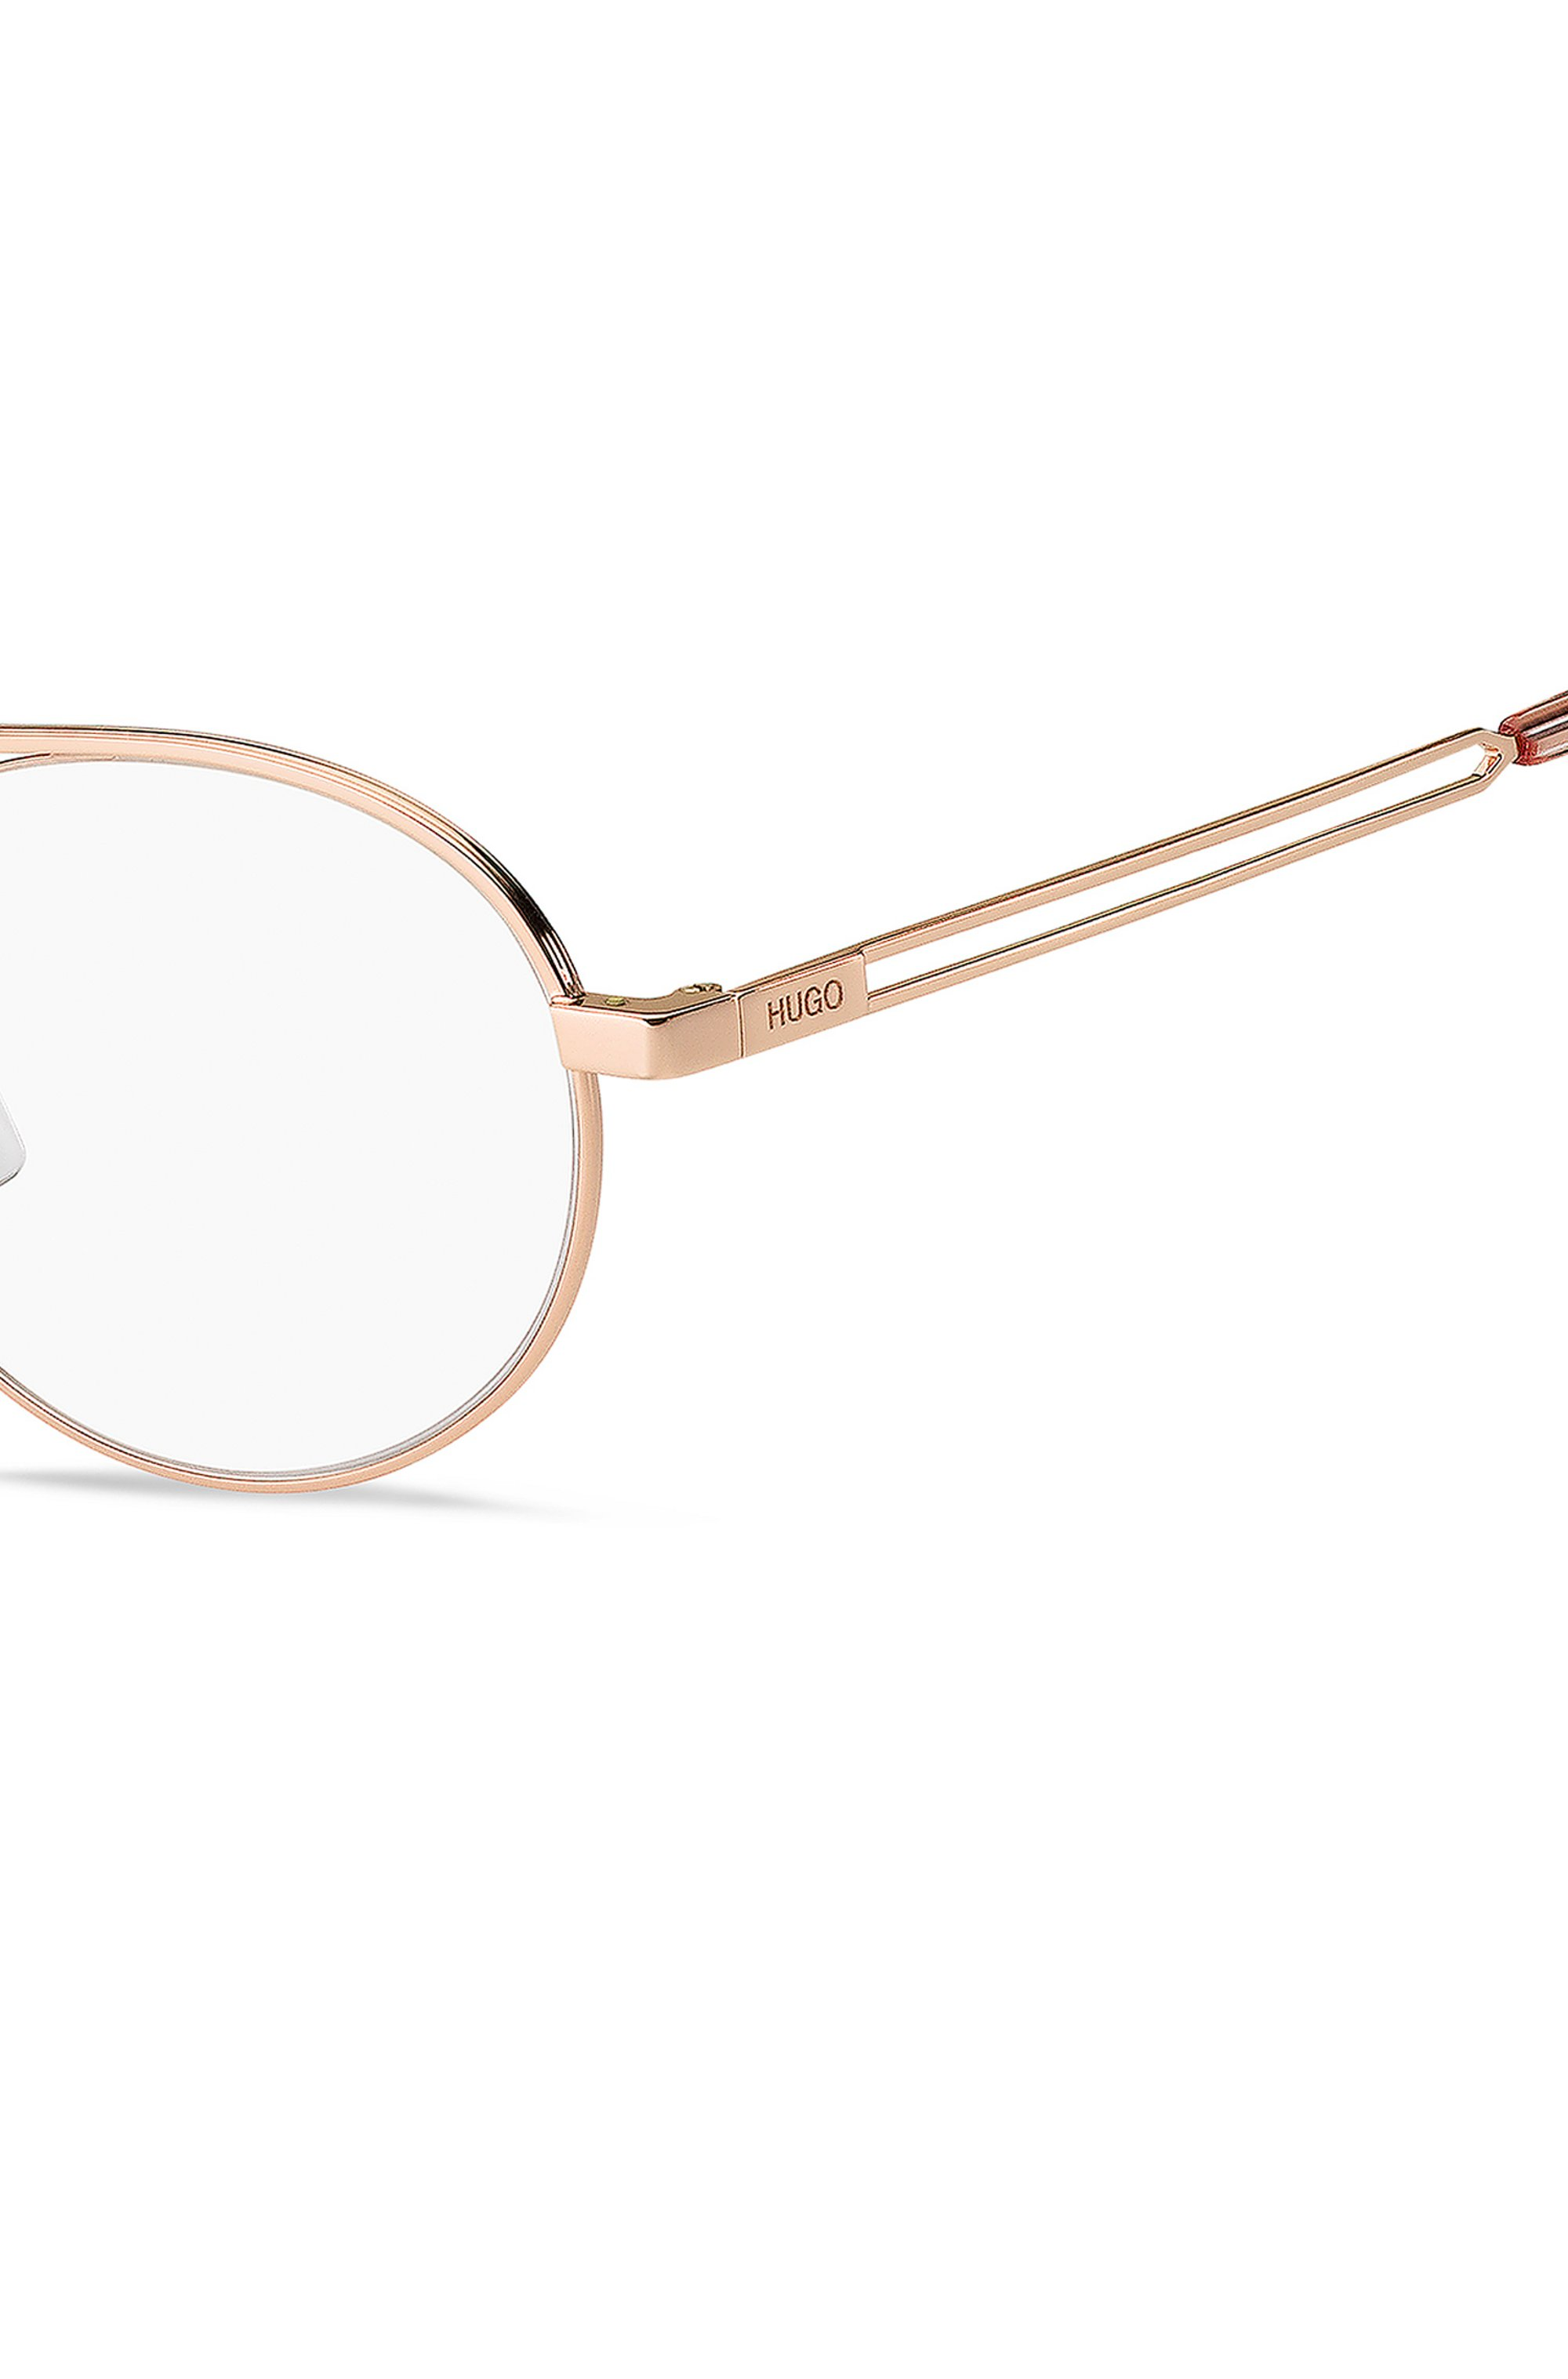 Optical frames with rose-gold finish and forked details